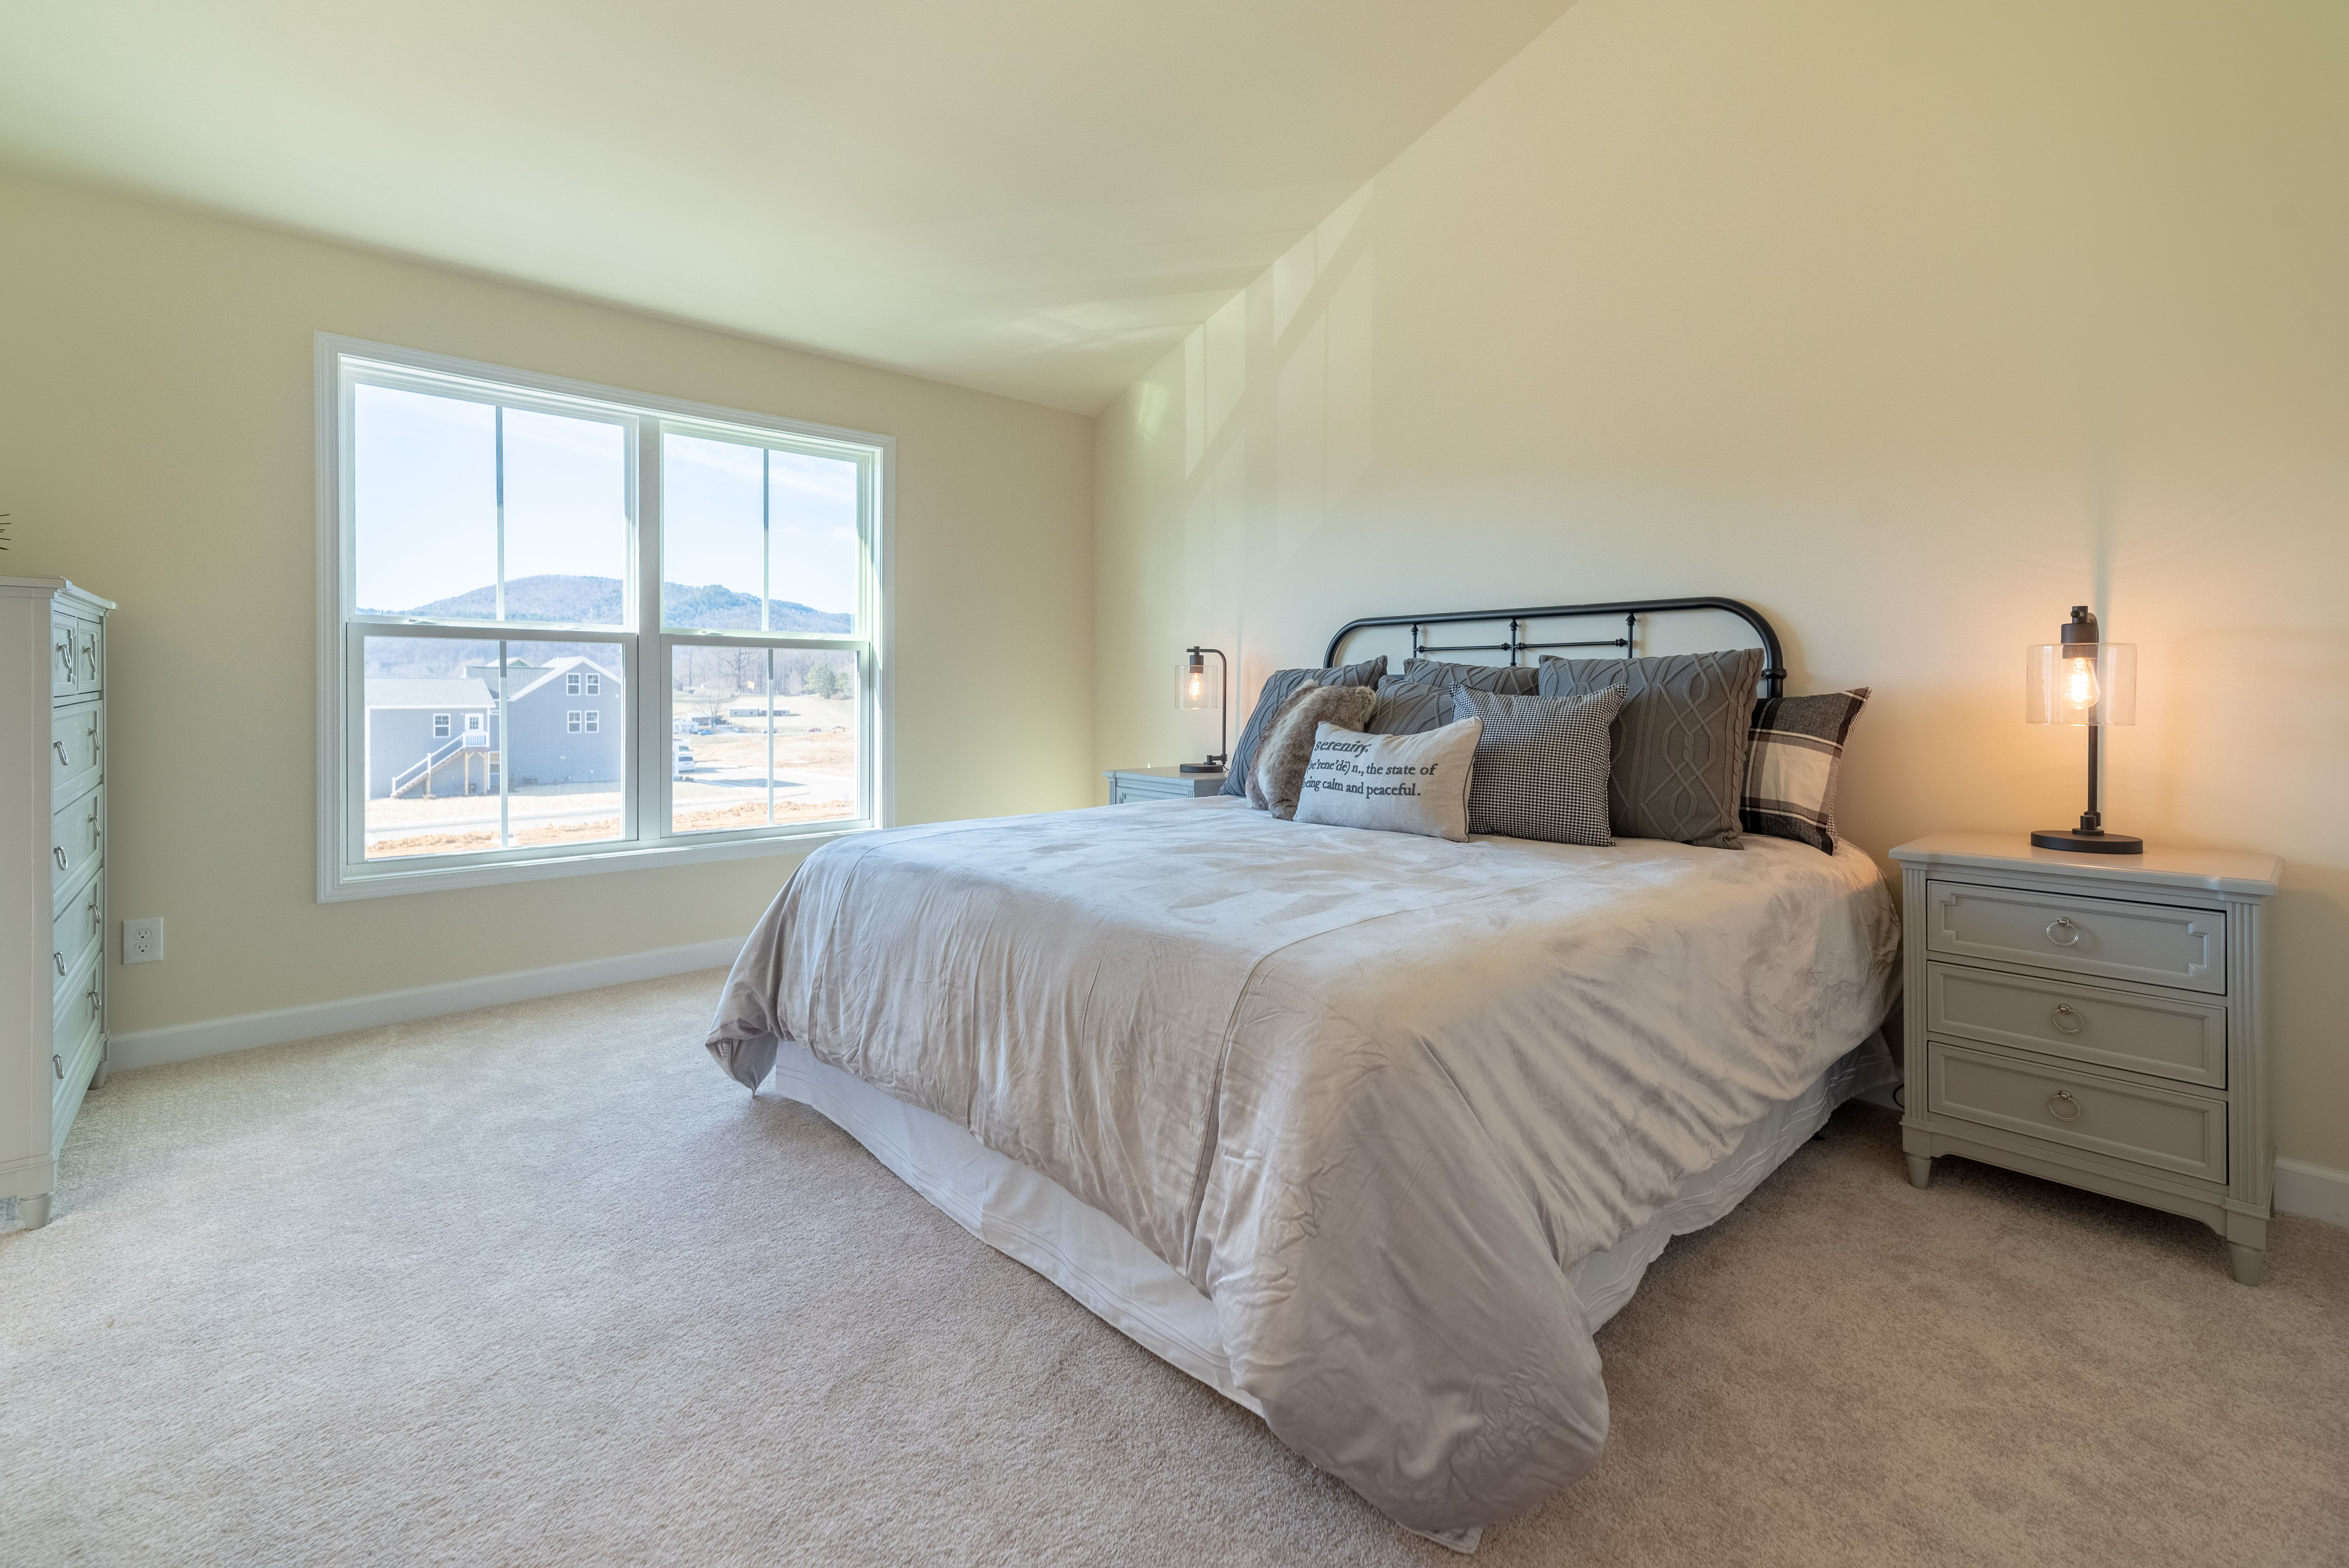 Bedroom featured in The Stafford By Stateson Homes in Roanoke, VA